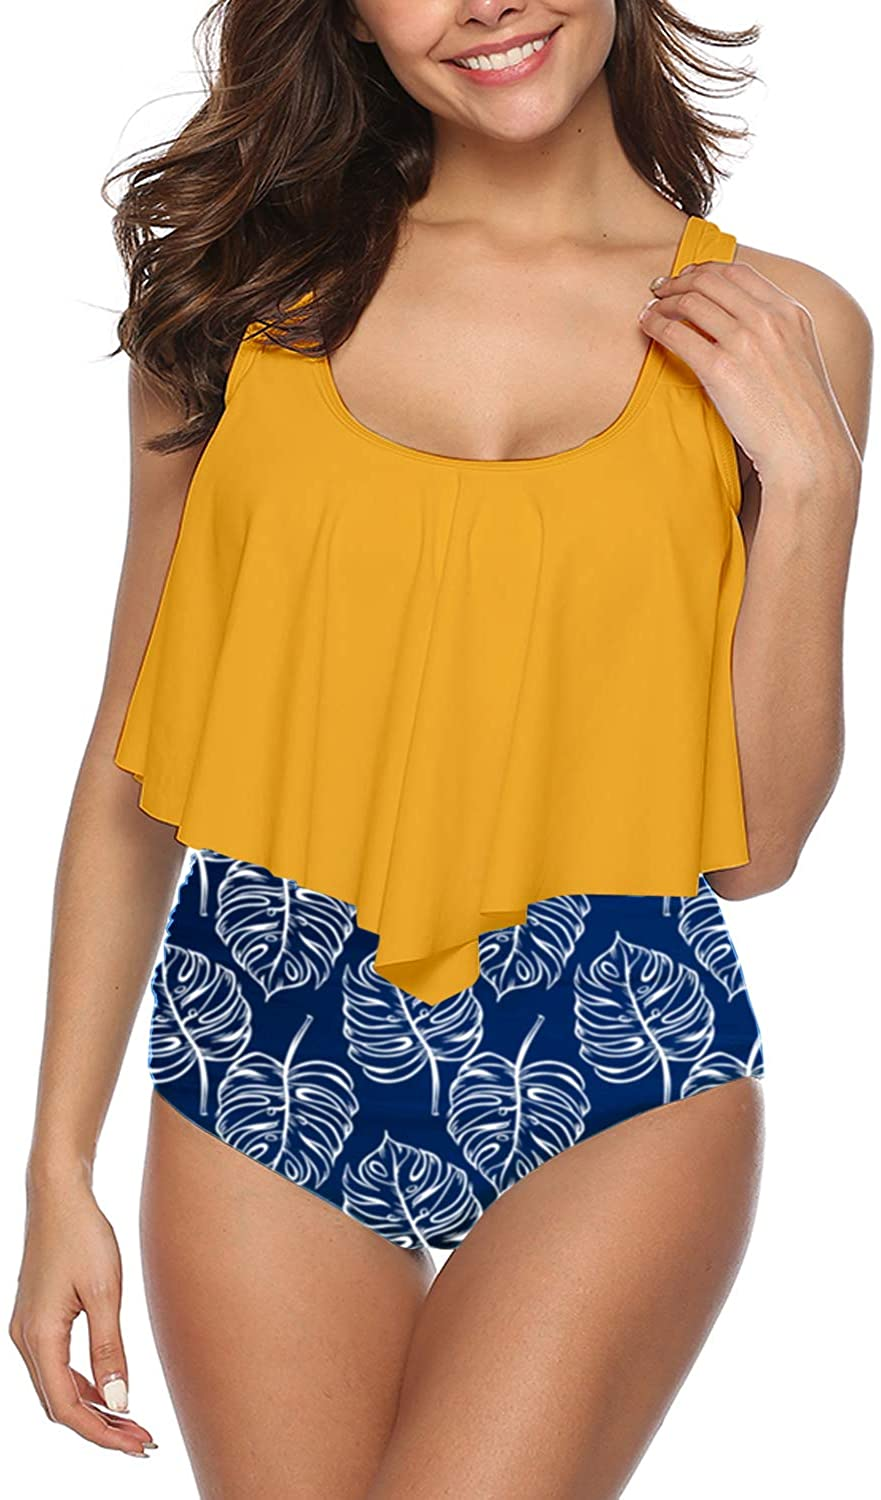 I2CRAZY Women High Waisted Swimsuit Two Piece Ruffled Flounce Top with Ruched Bottom